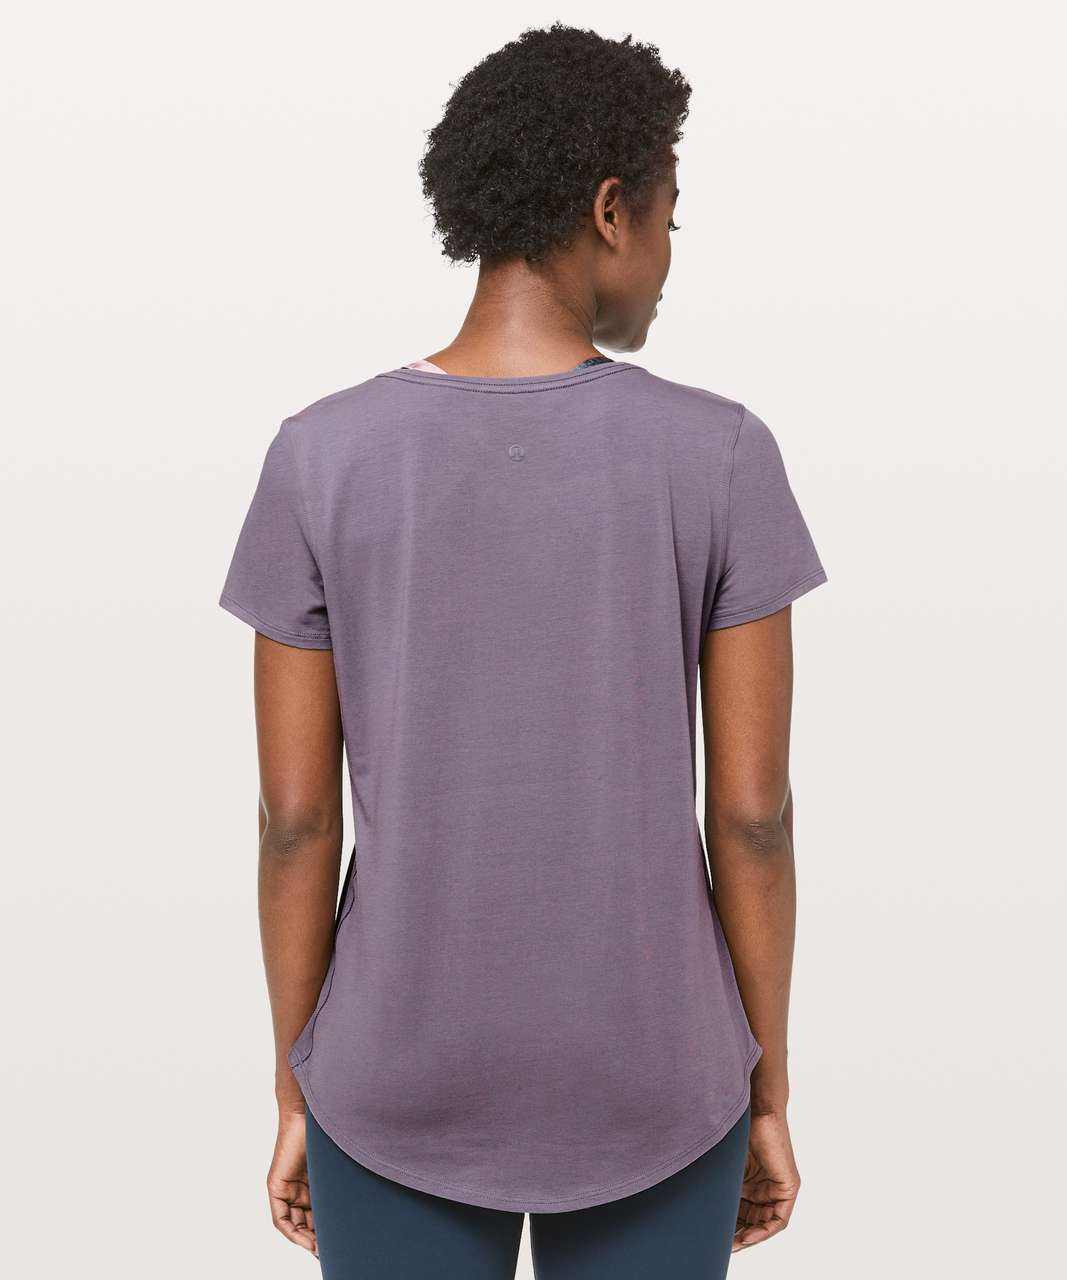 Lululemon Love Crew III - Graphite Purple (First Release)